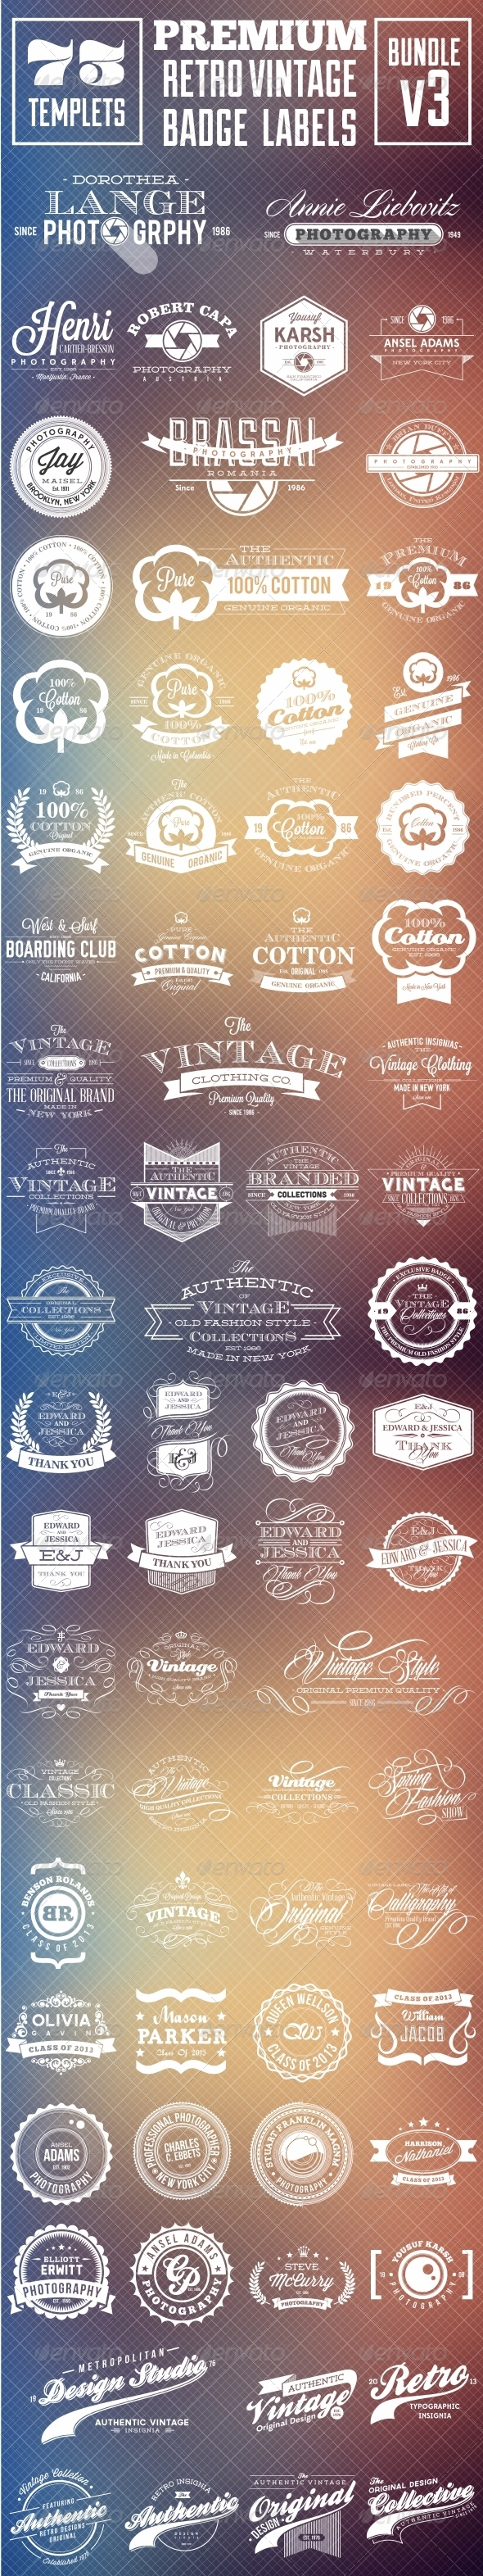 GraphicRiver Premium Retro Vintage Badge Labels Bundle v3 8274395